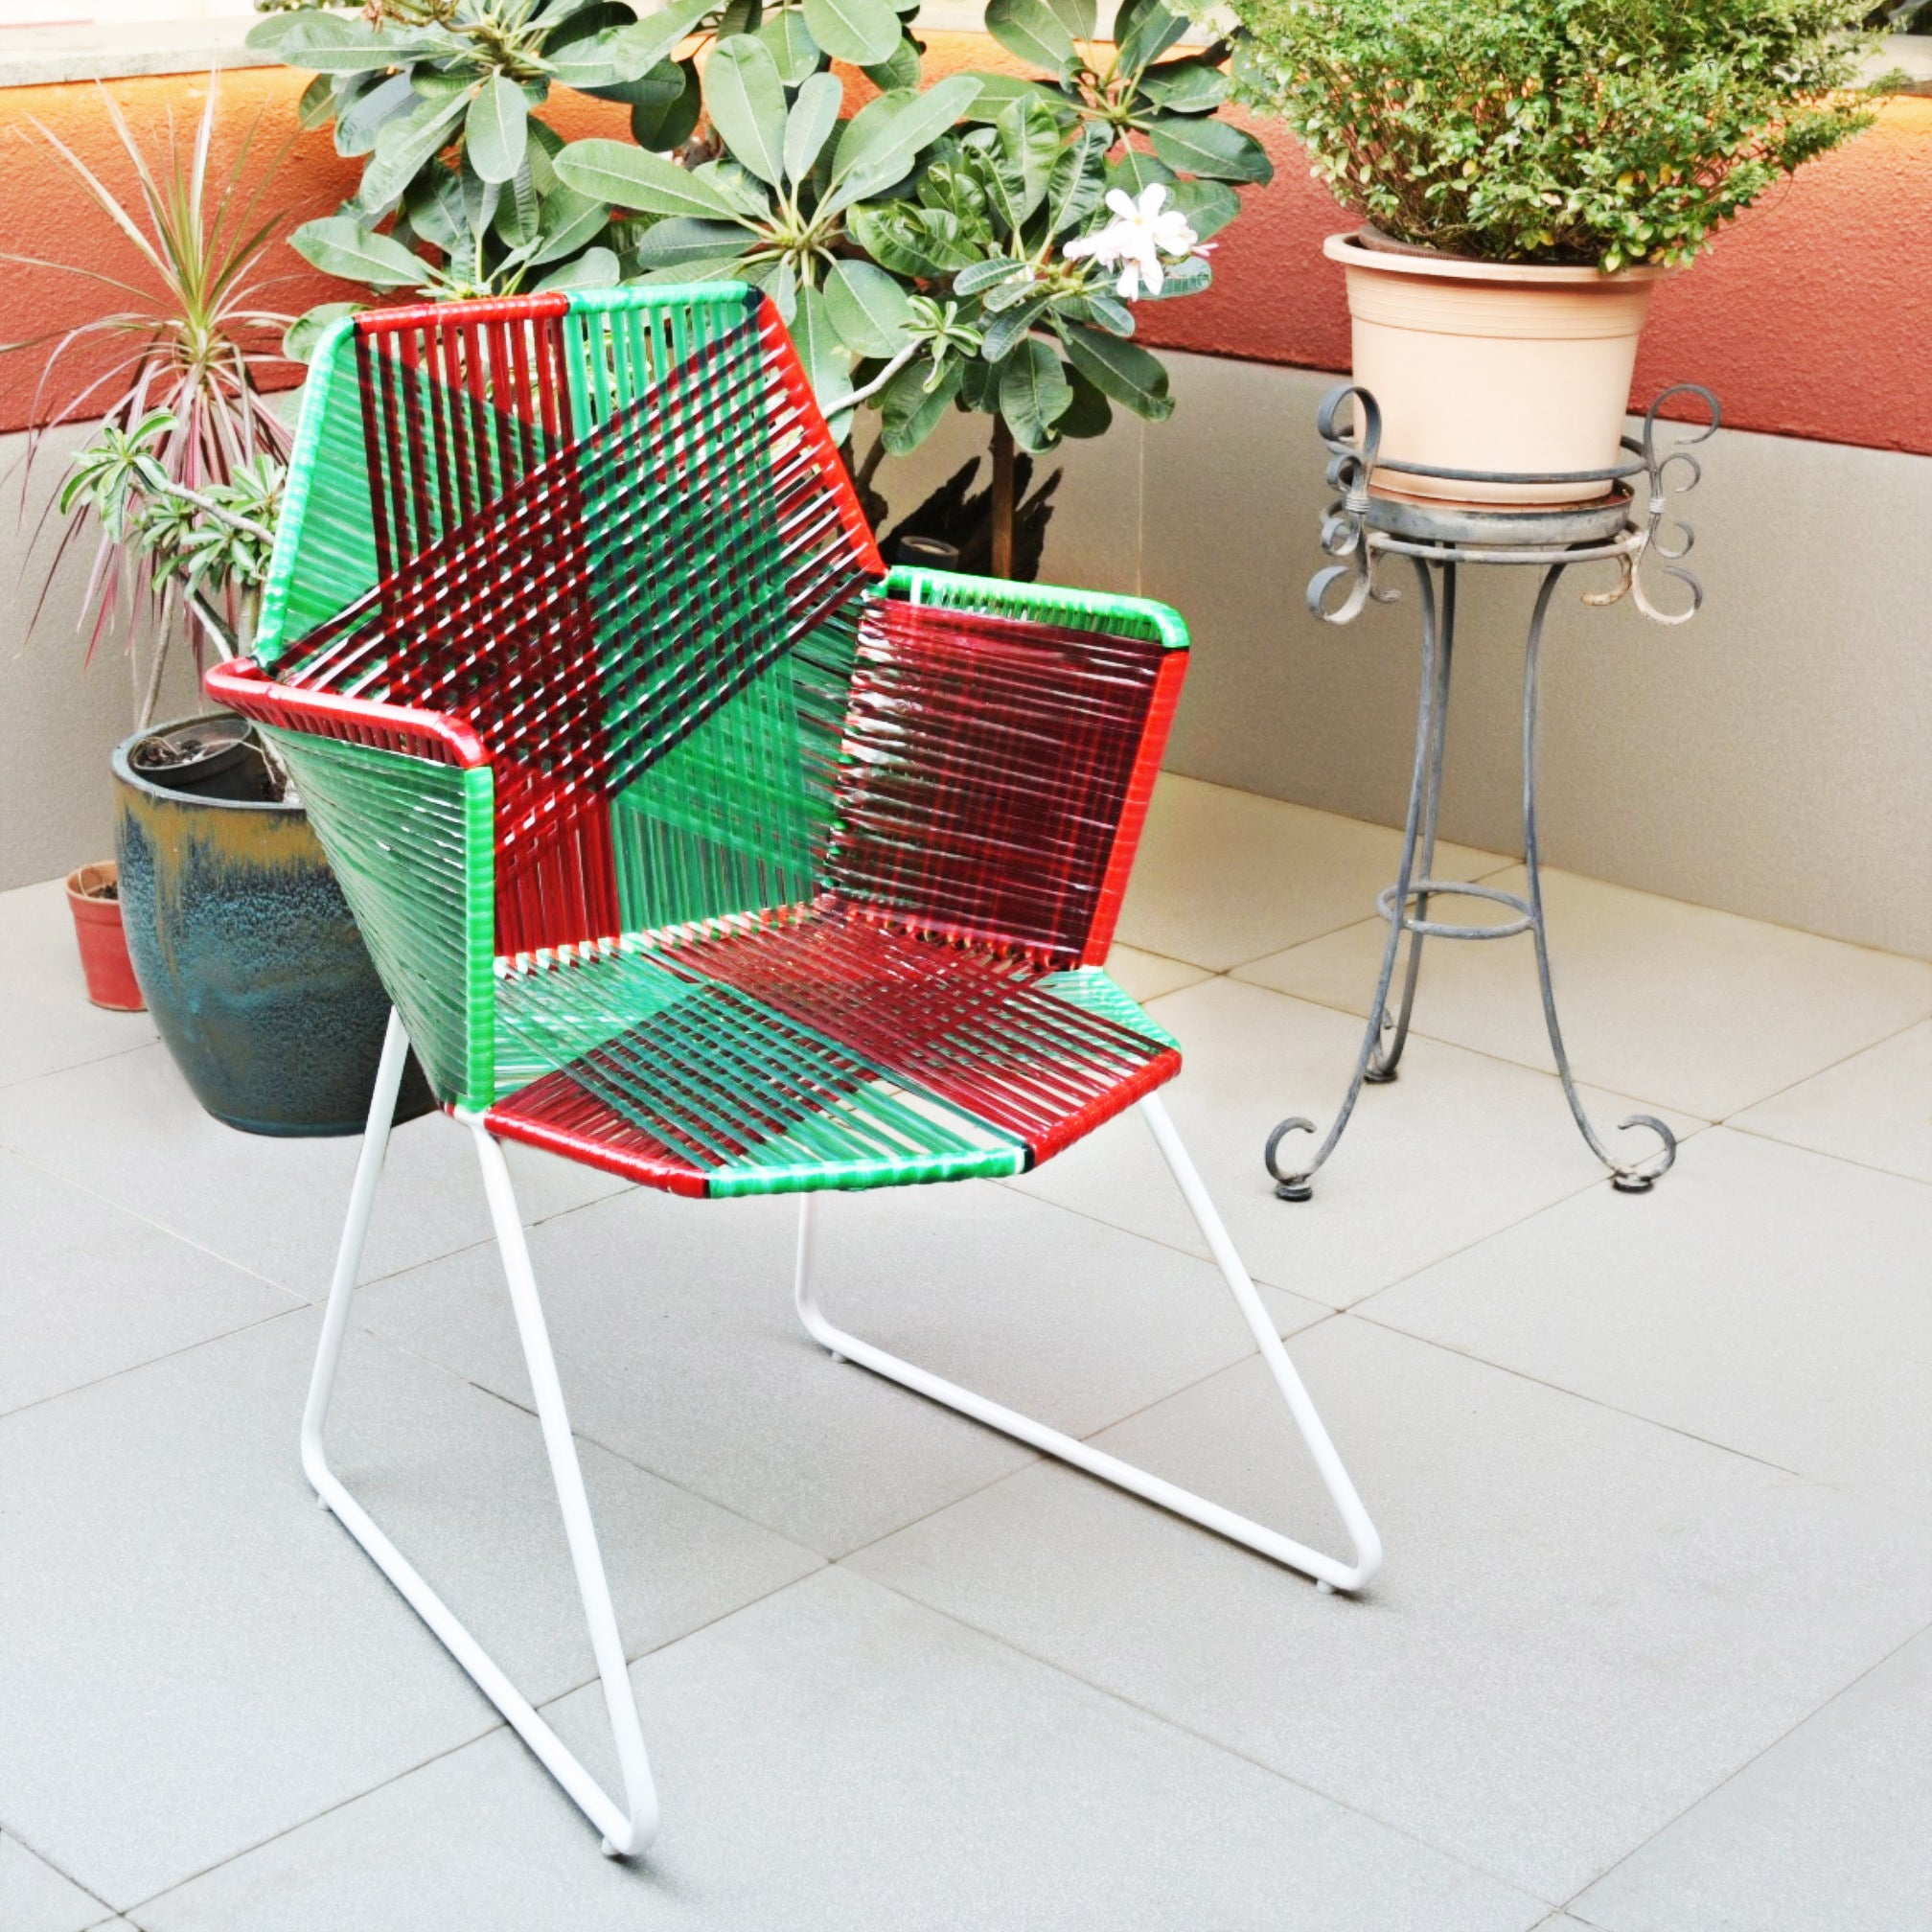 1 BHK Interiors Psychedelic Metal & Plastic Cane Outdoor Garden Chair in Red & Green with White Frame